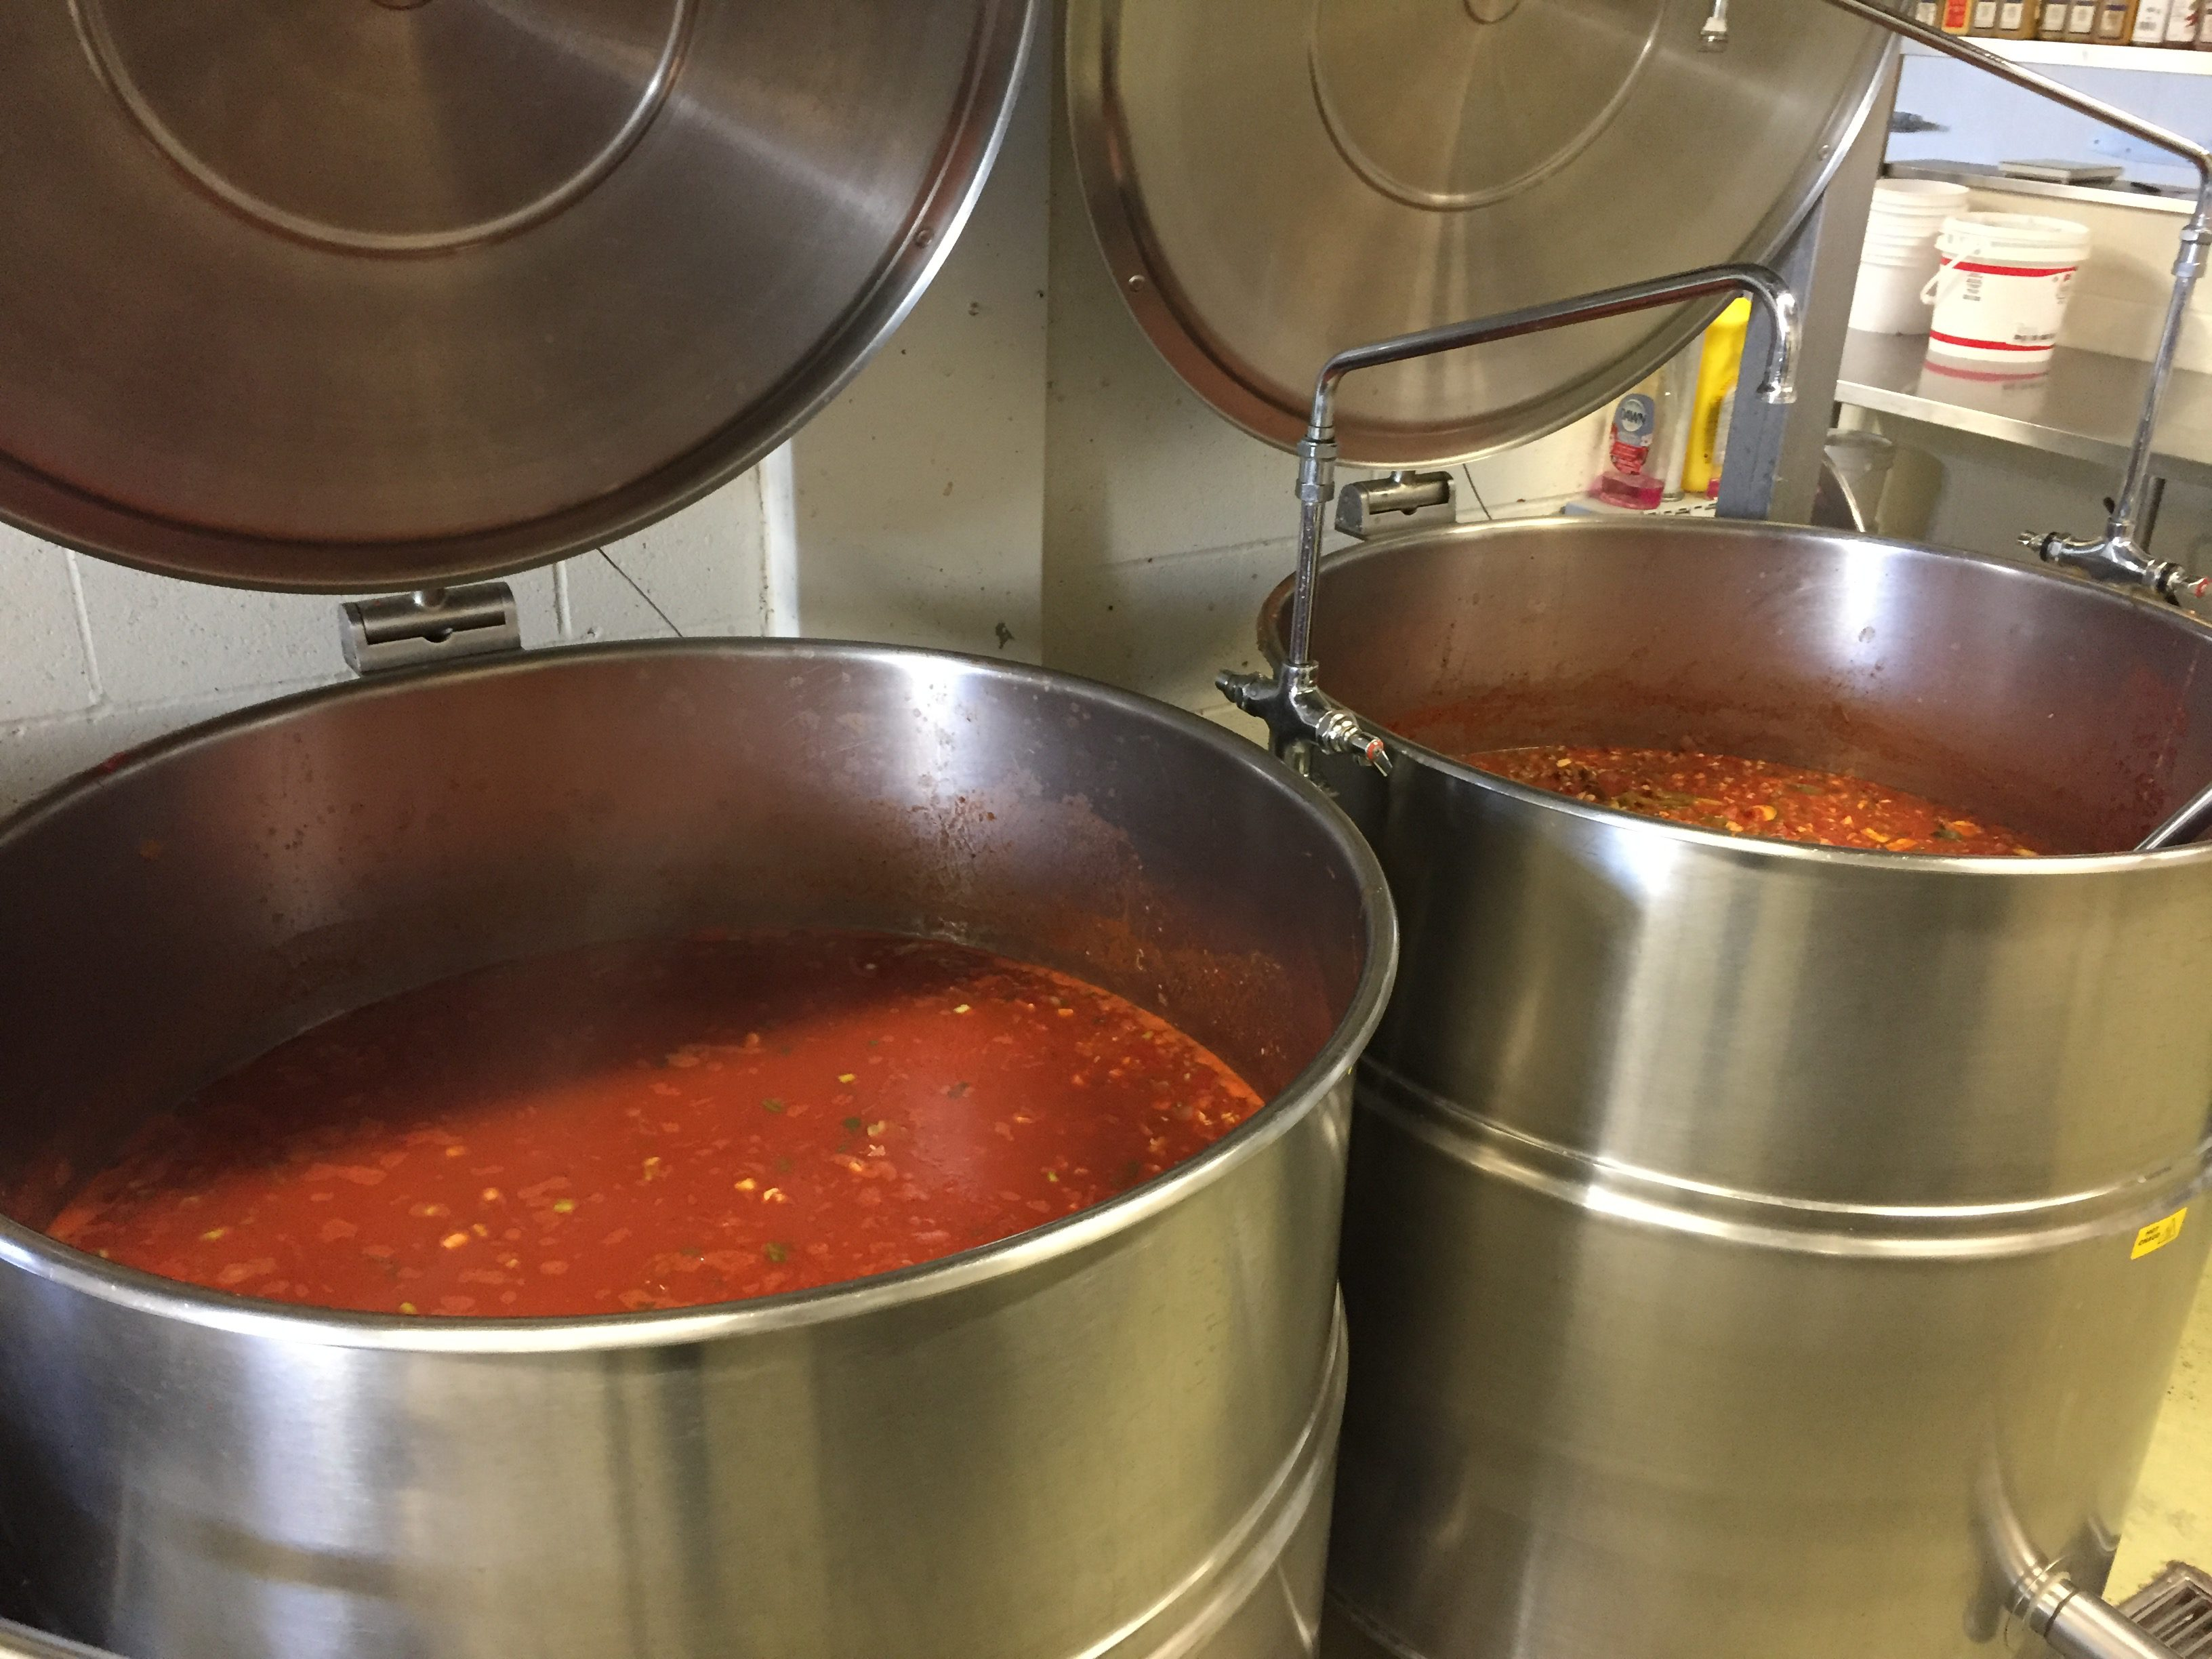 Meals are cooked in large drums.